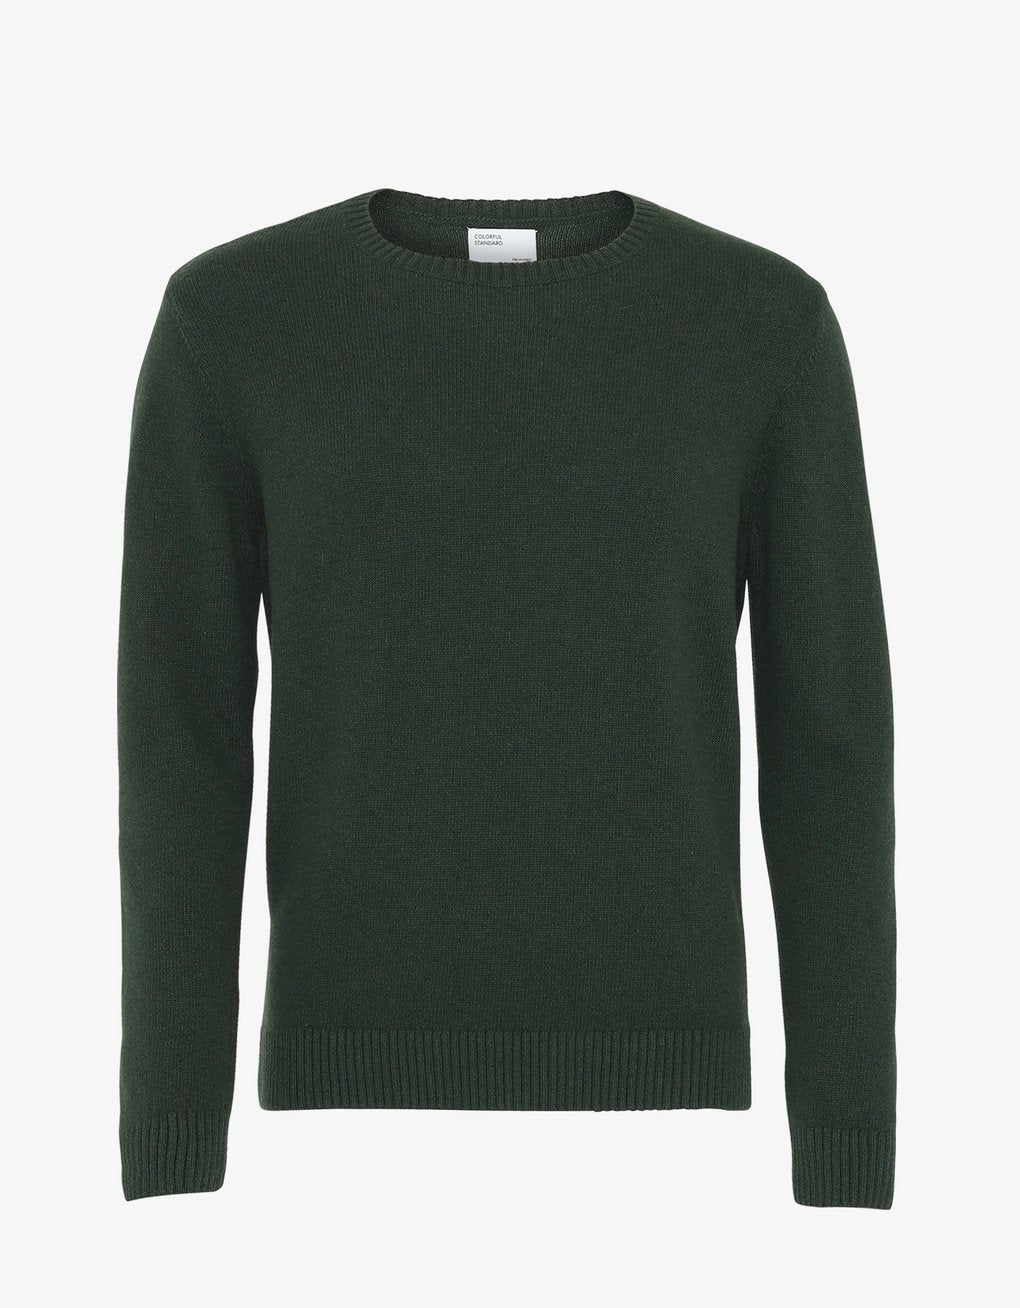 Classic Merino Wool Crew - Hunter Green